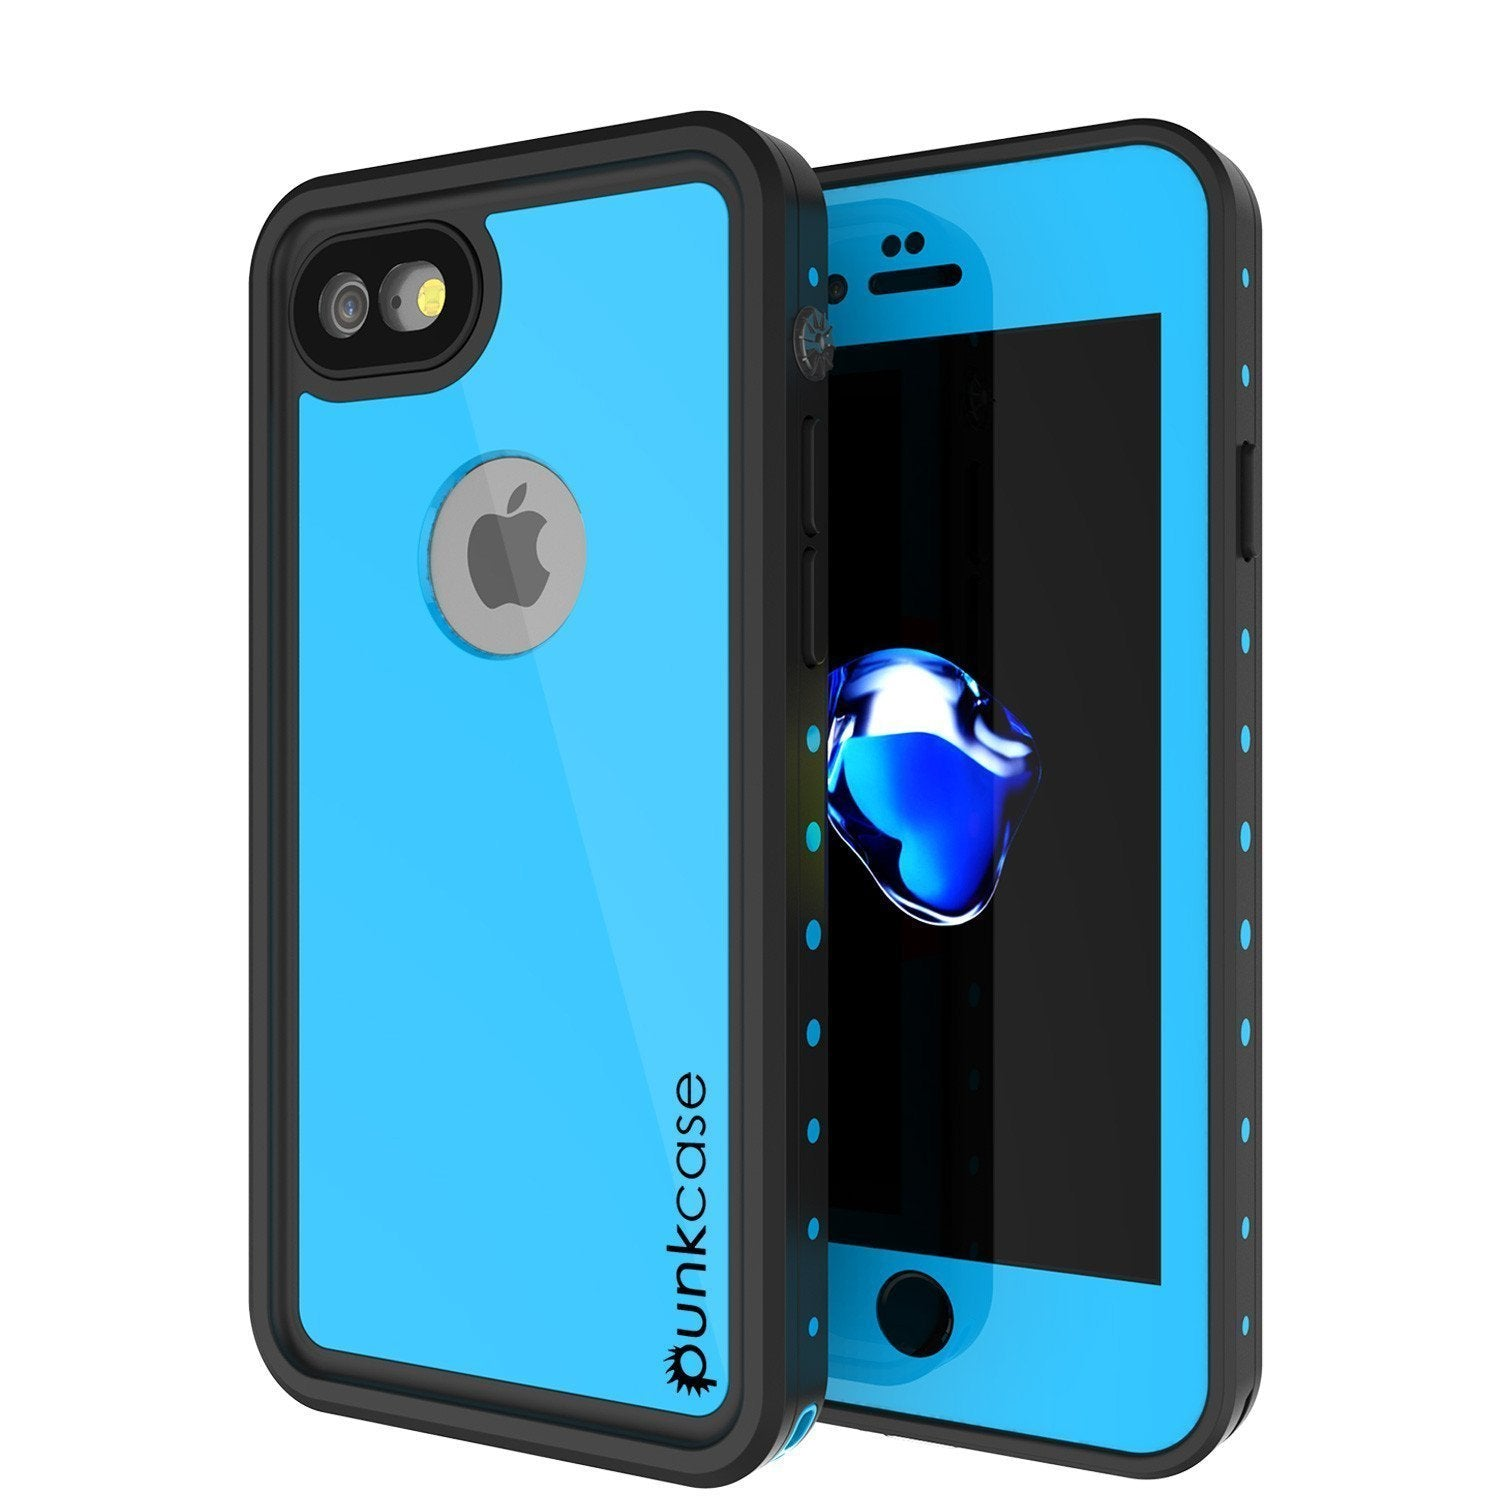 low priced ddeaf b379f iPhone 8 Waterproof Case, Punkcase [Light Blue] [StudStar Series] [Slim  Fit] [IP68 Certified] [Dirt/Snow Proof]